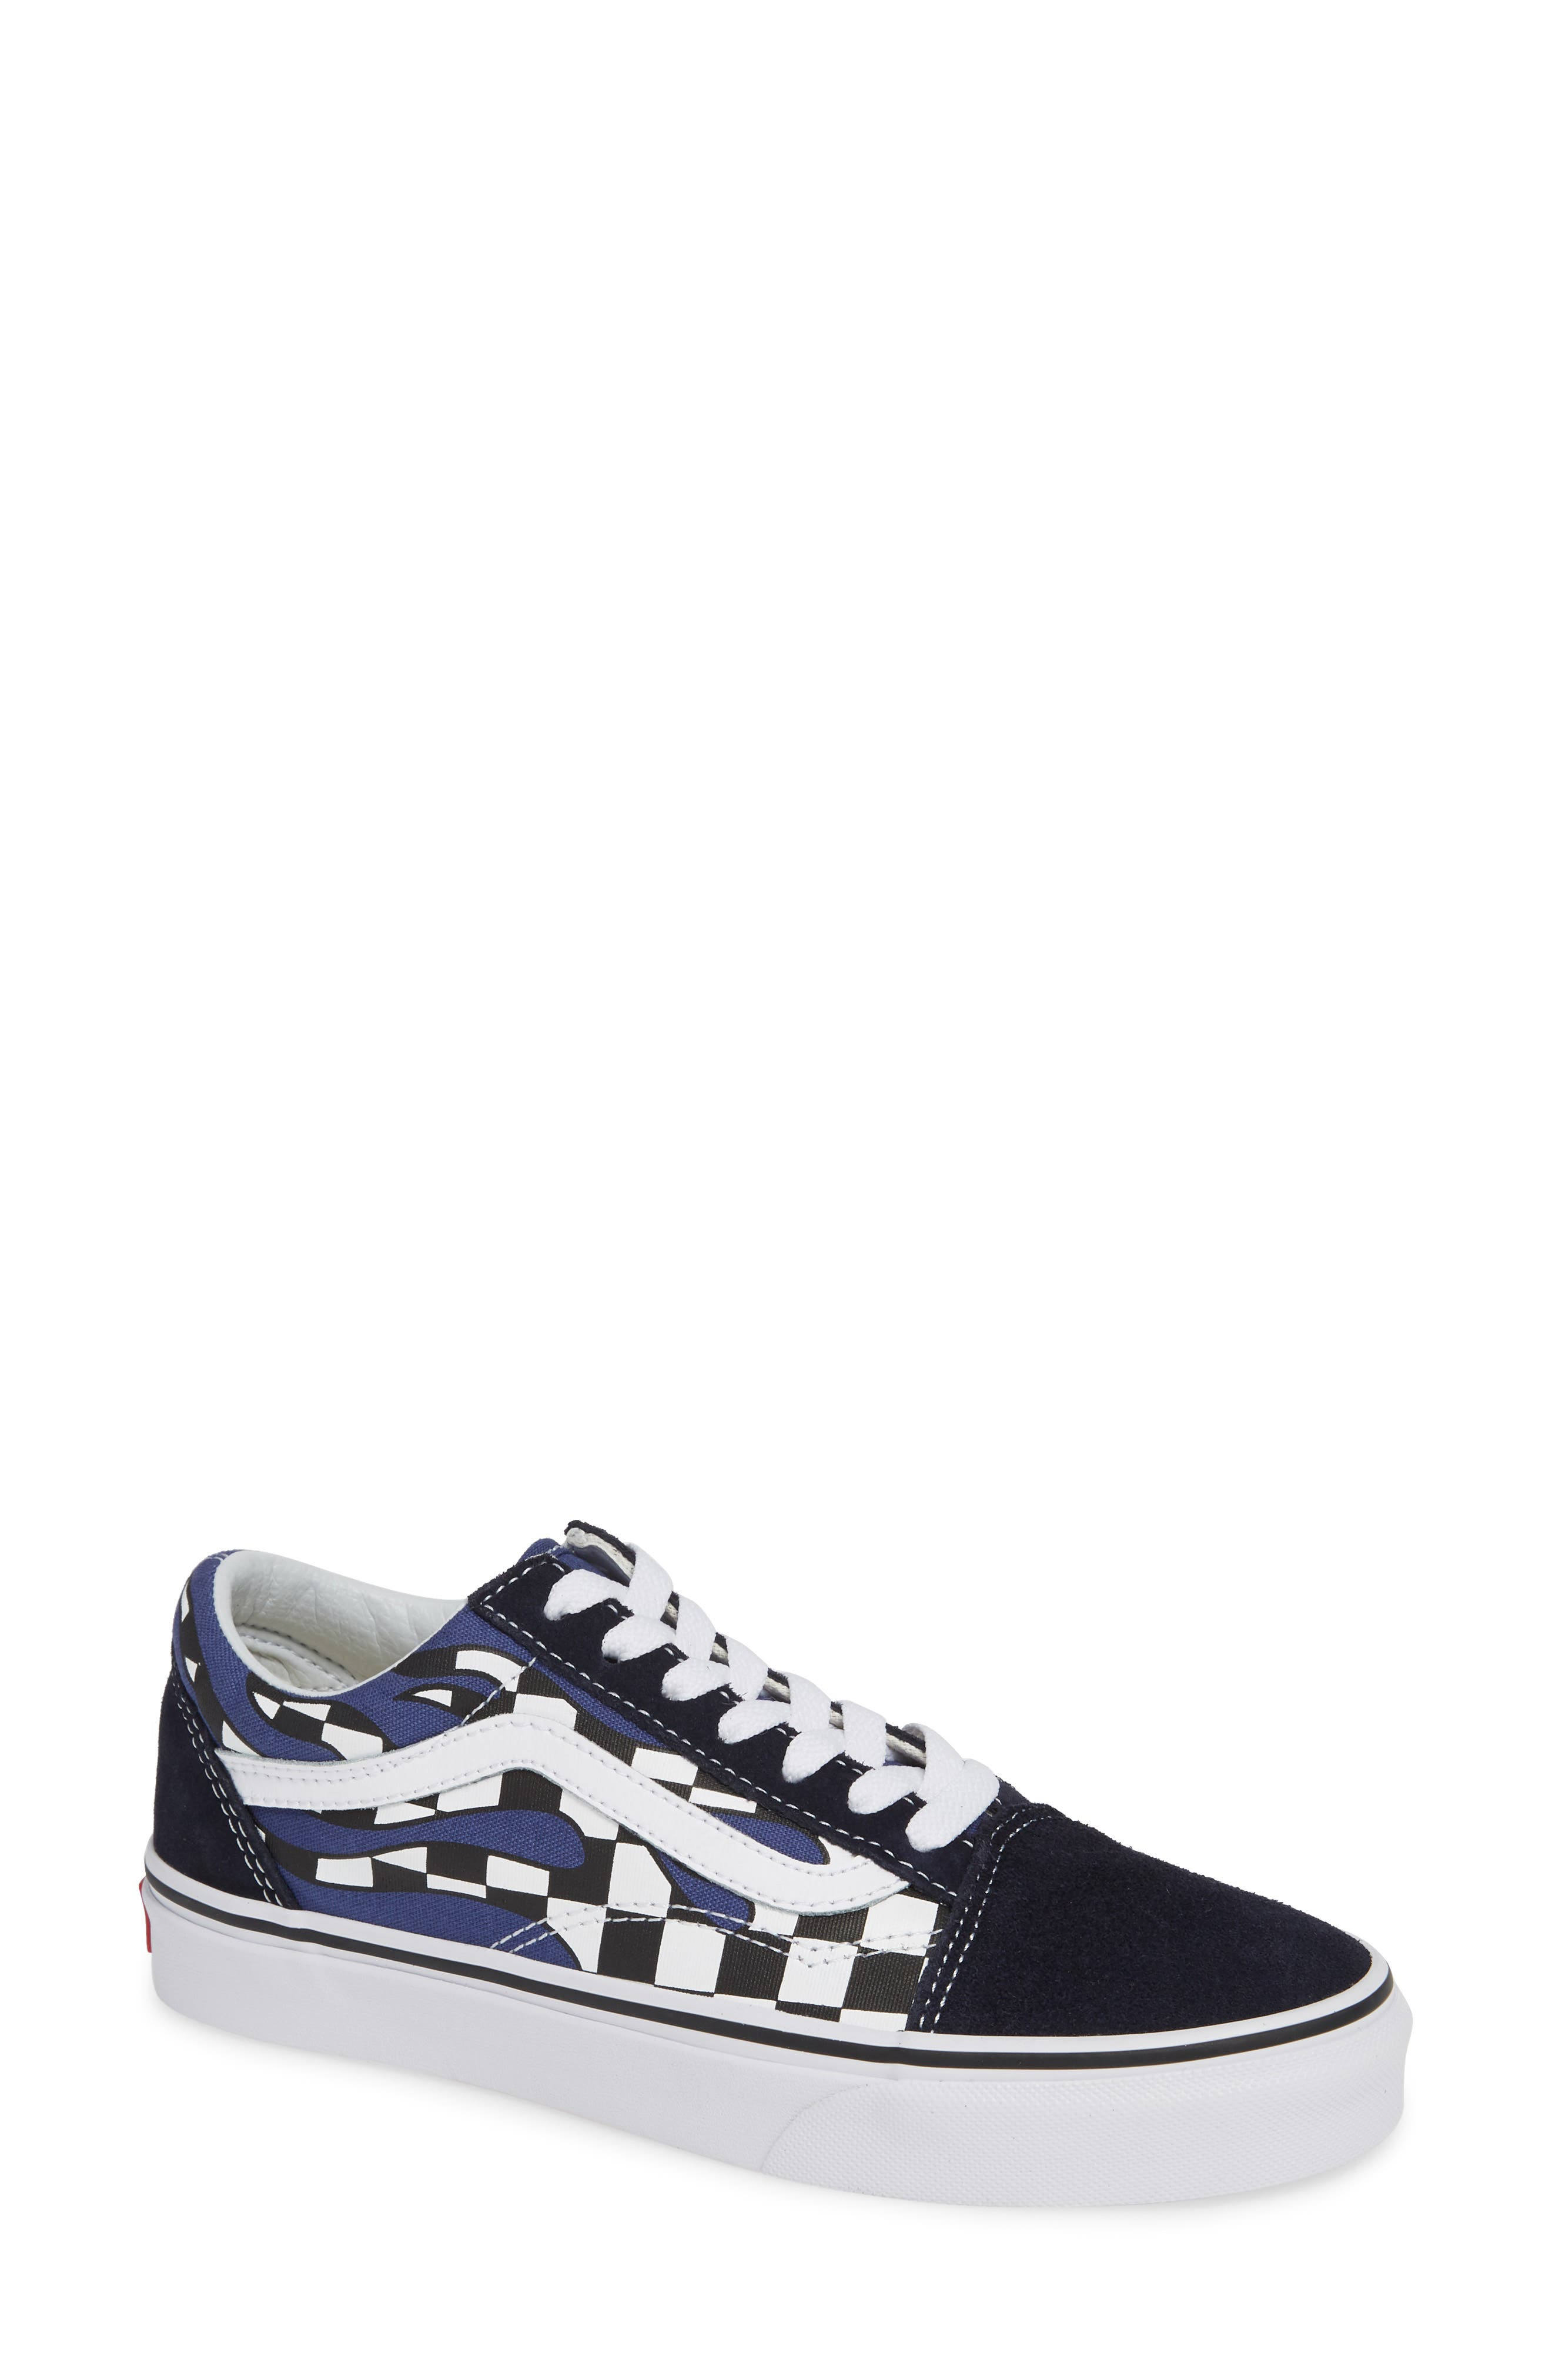 Old Skool Sneaker,                             Main thumbnail 1, color,                             NAVY/ TRUE WHITE LEATHER